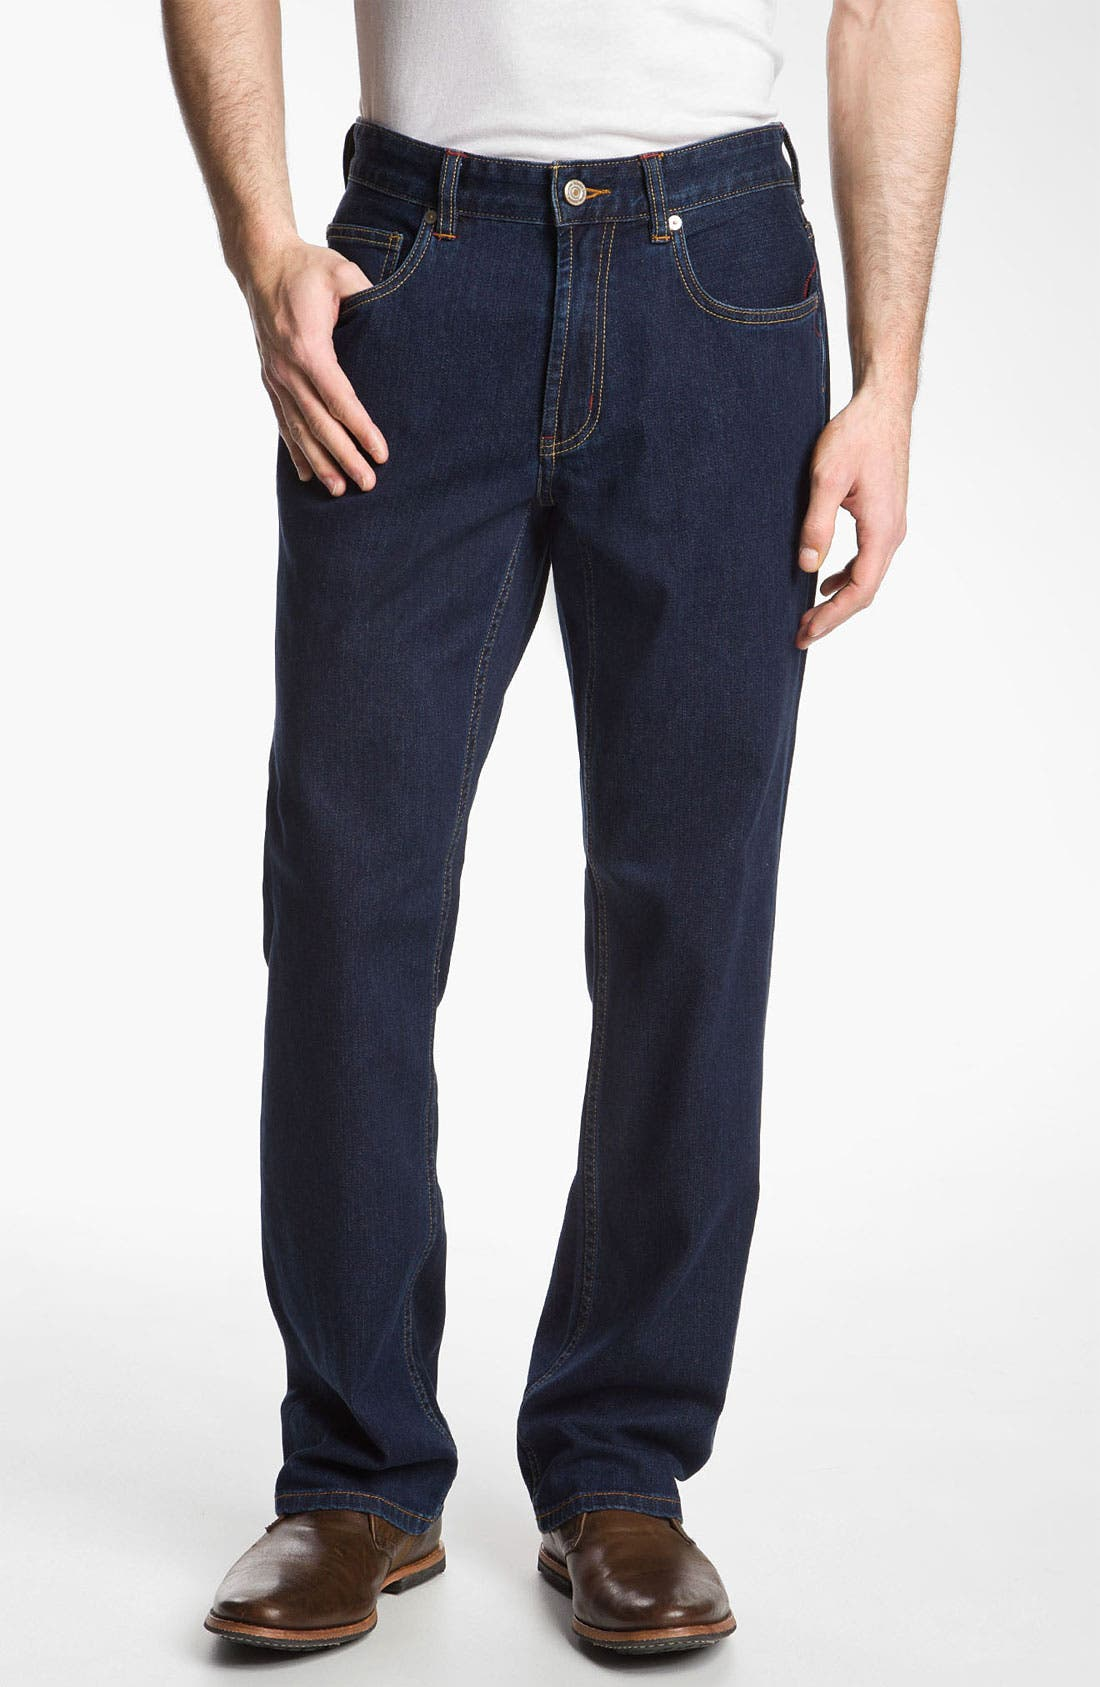 Main Image - Tommy Bahama Denim 'Original Cooper' Jeans (New Rinse)